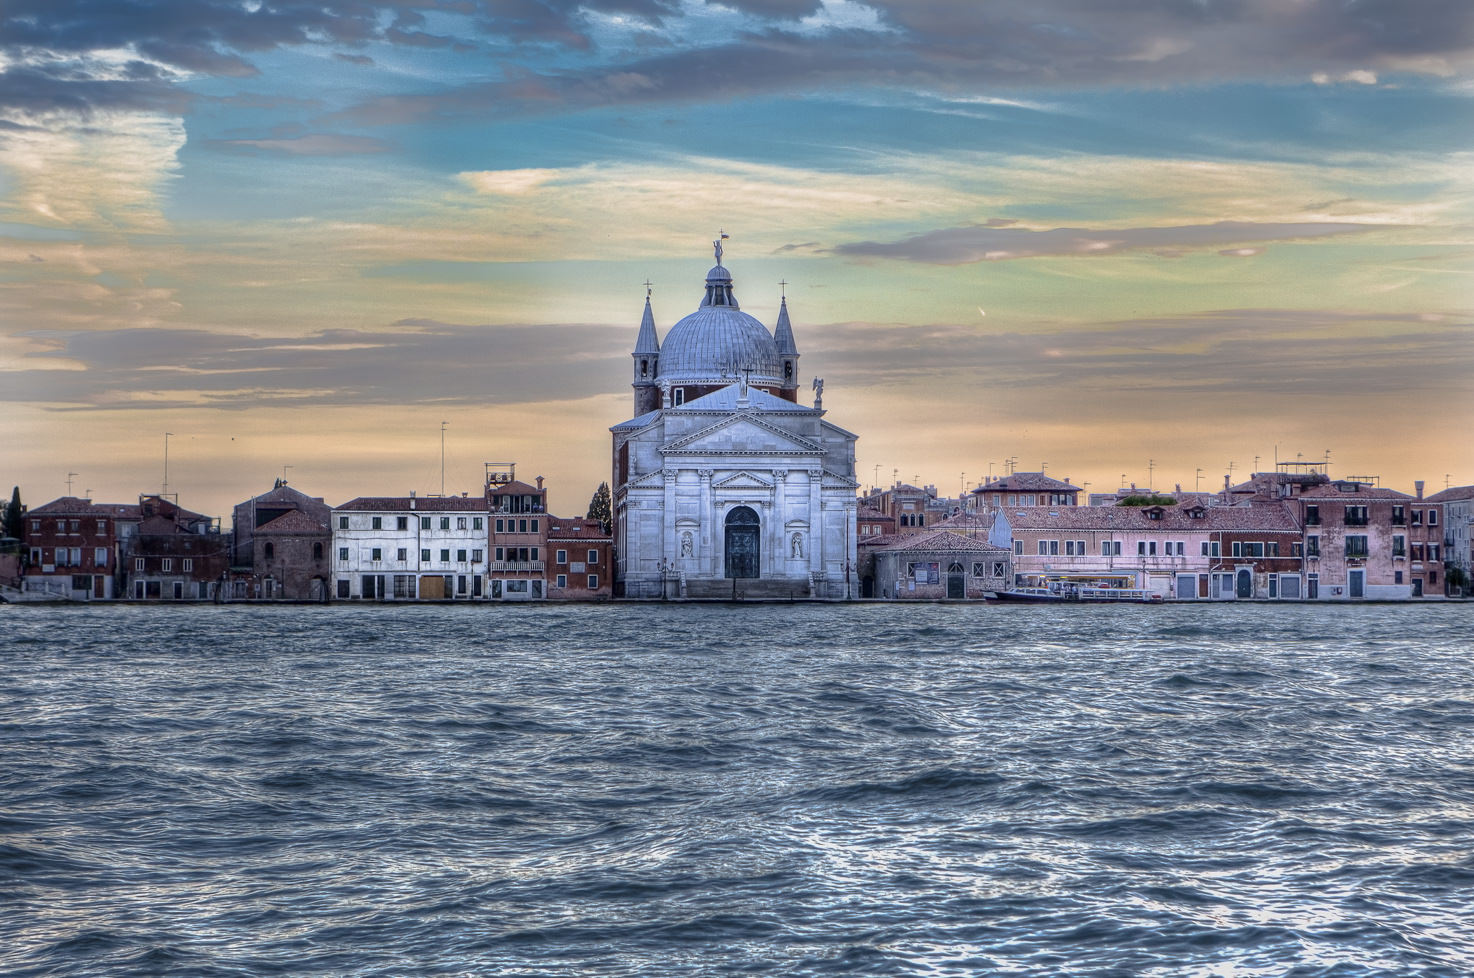 Church of the Redentore in Venice